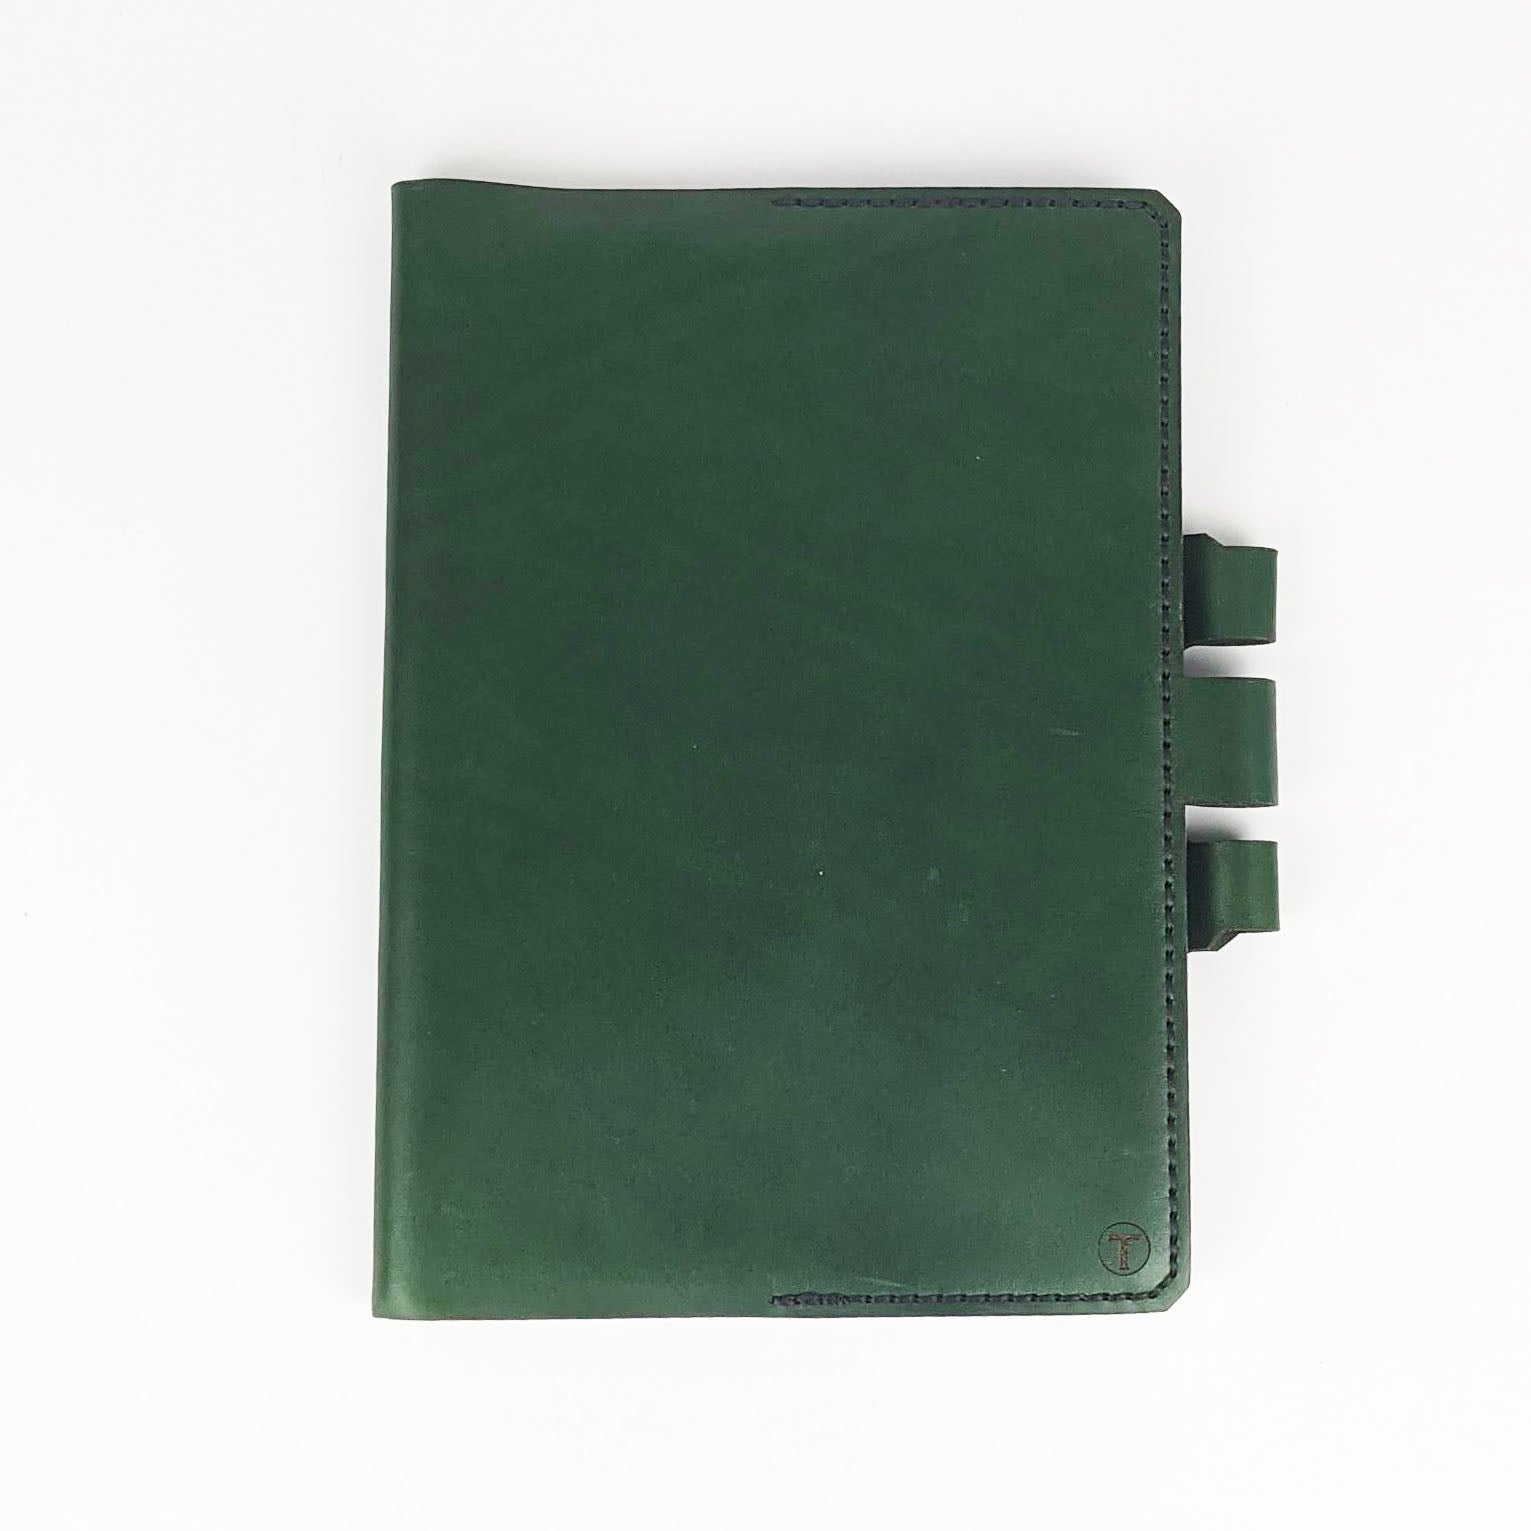 Leuchtturm 1917 Journal Cover